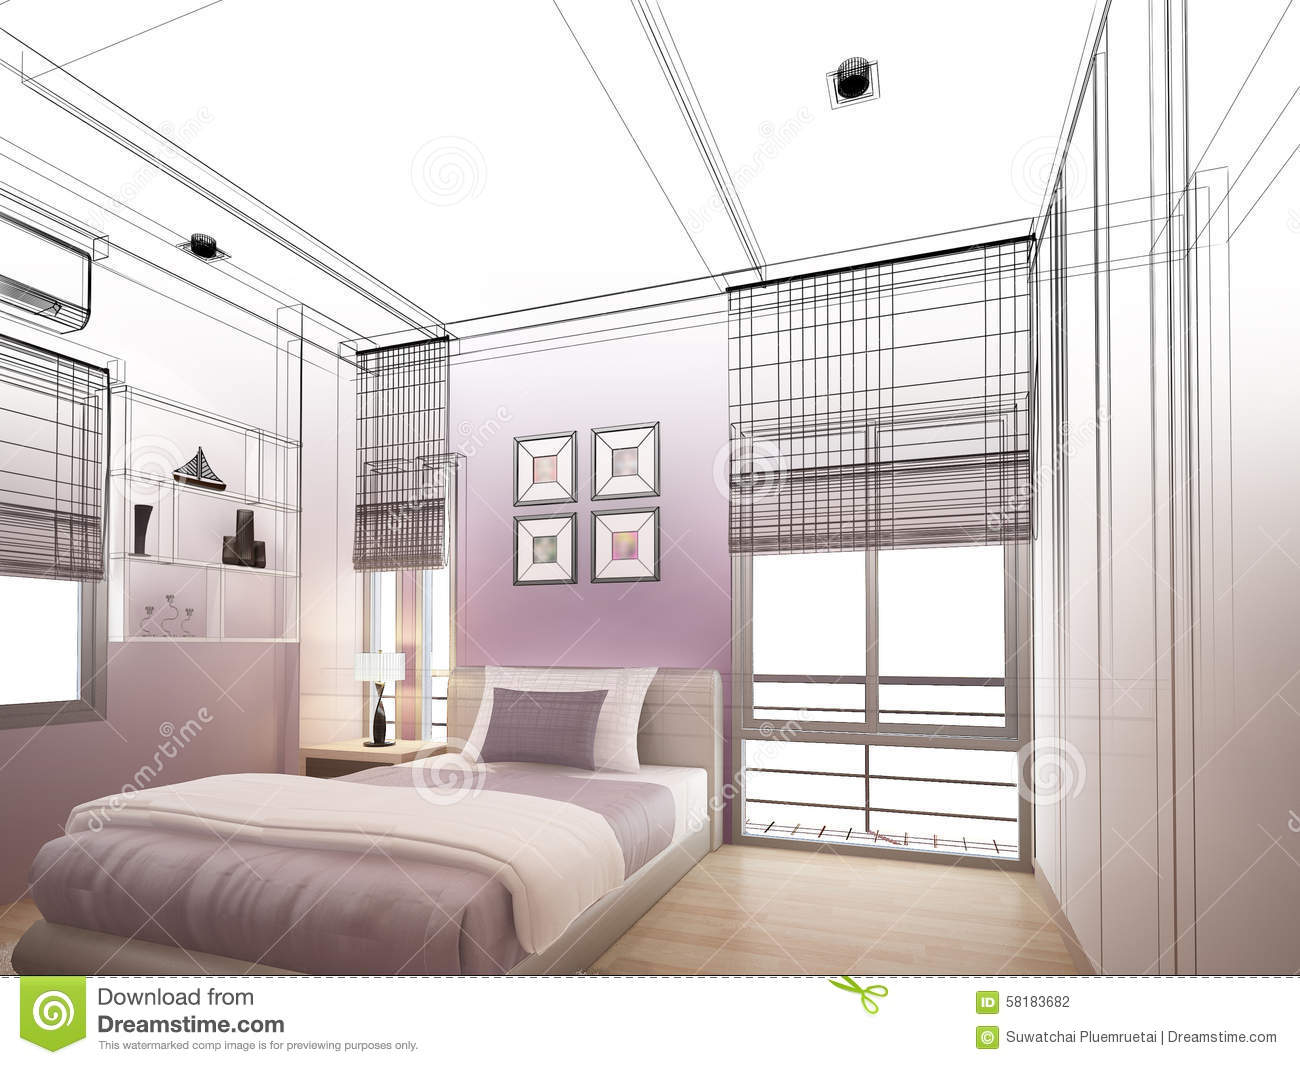 Abstract Sketch Design Of Interior Bedroom Interior Concept